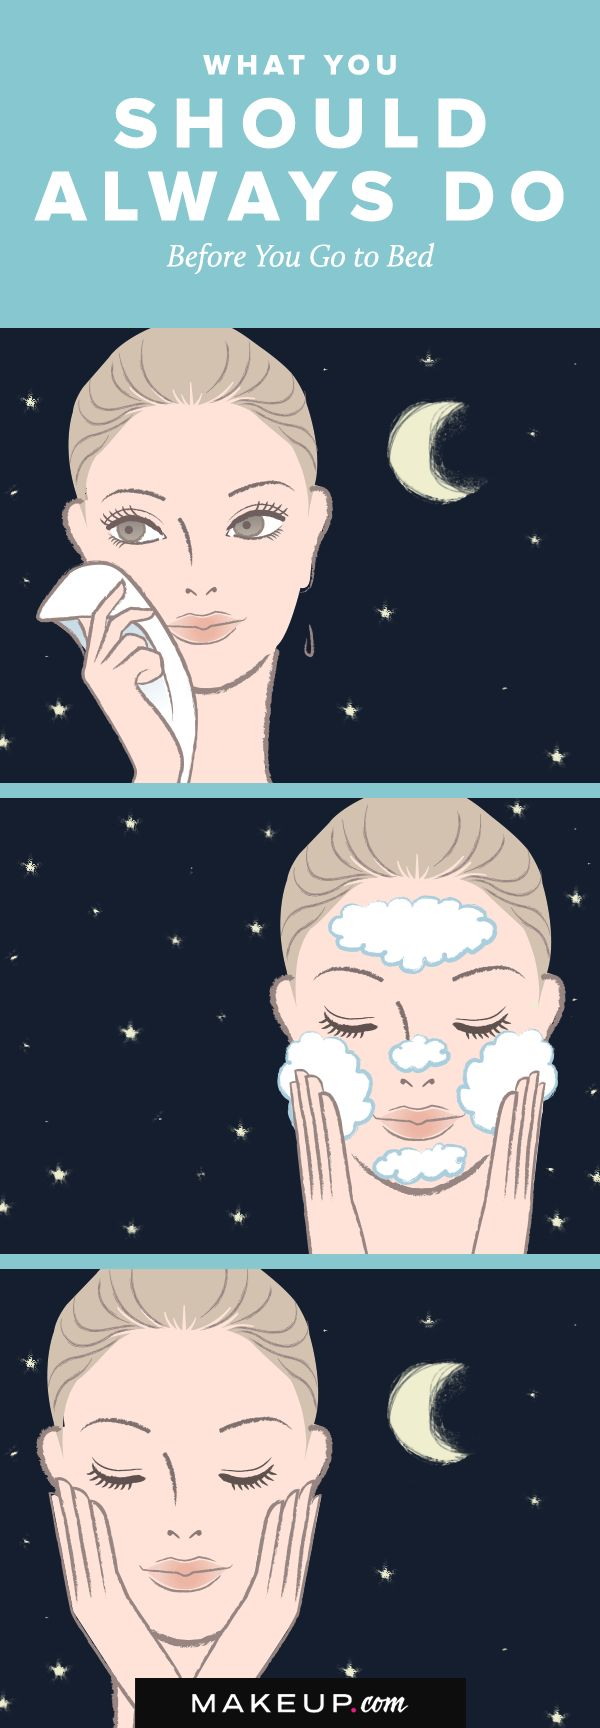 You know you should wash off your makeup before you go to bed, but there is a special routine you should follow before you hit the sack at night. We have tips for what you should add to your skincare routine before bedtime. Follow our guide now!